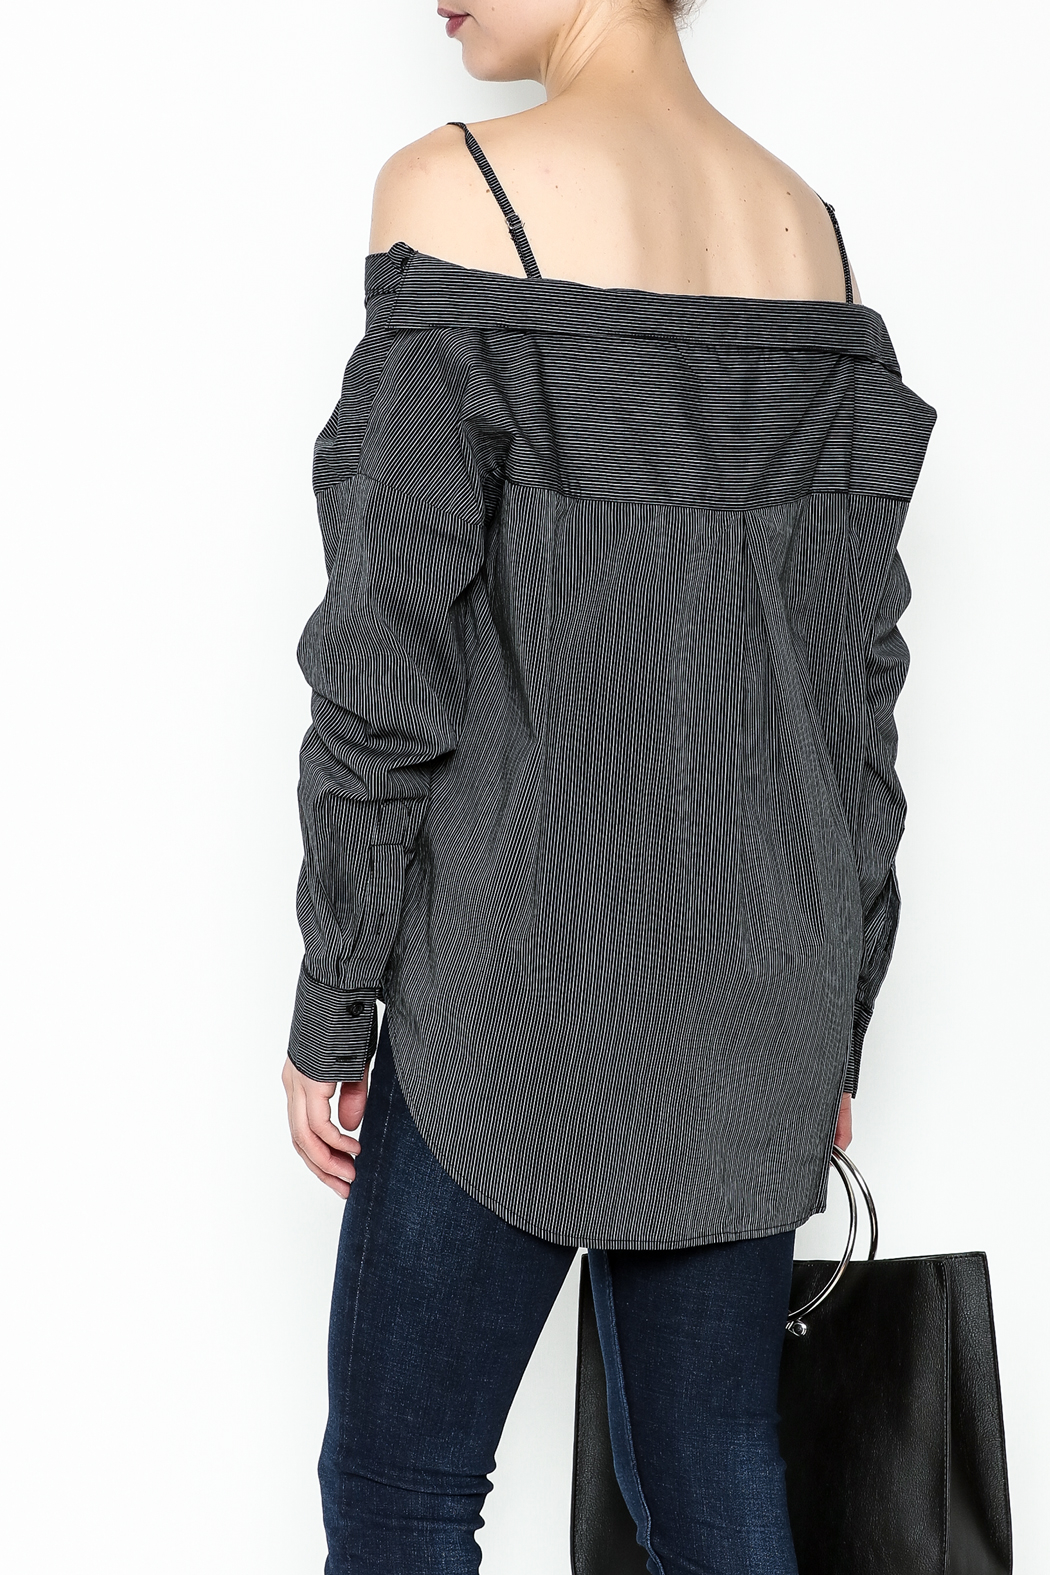 y&i clothing boutique Celine Stripe Blouse - Back Cropped Image